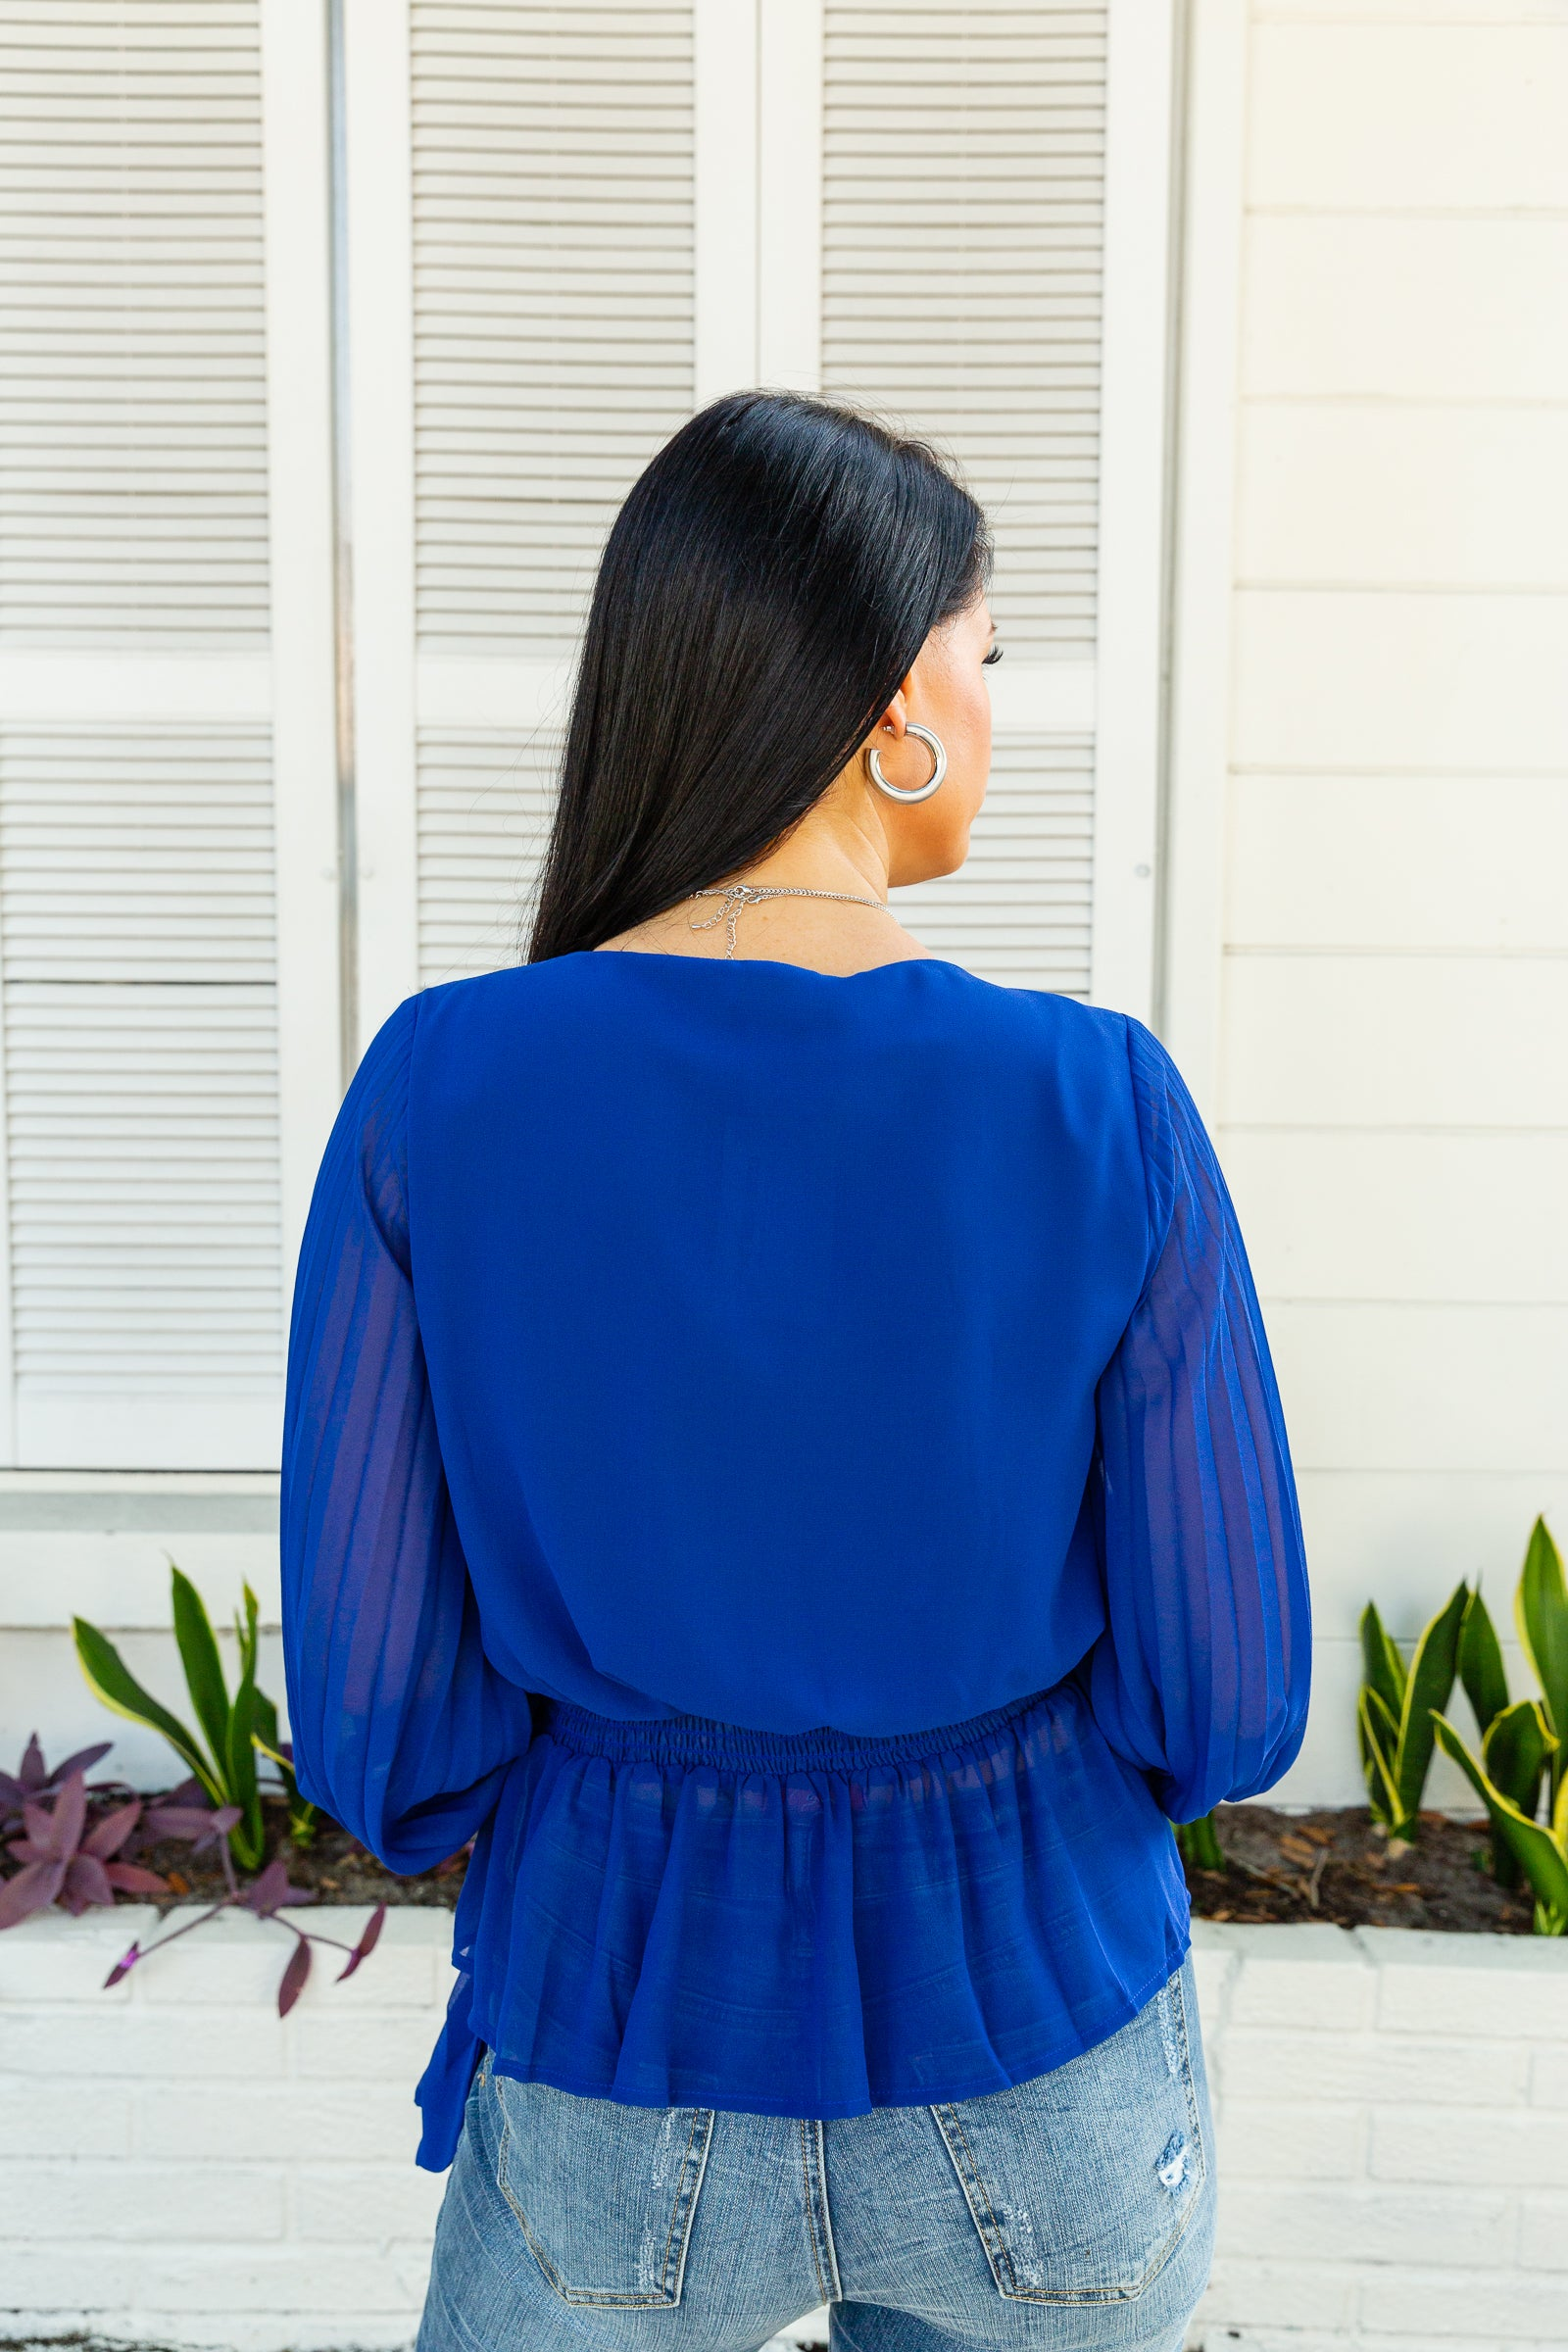 Long pleated button cuffed sleeves that attach to a surplice neckline on a relaxed bodice meeting a fitted waistband with a side tie hem before flowing into a peplum silhouette.